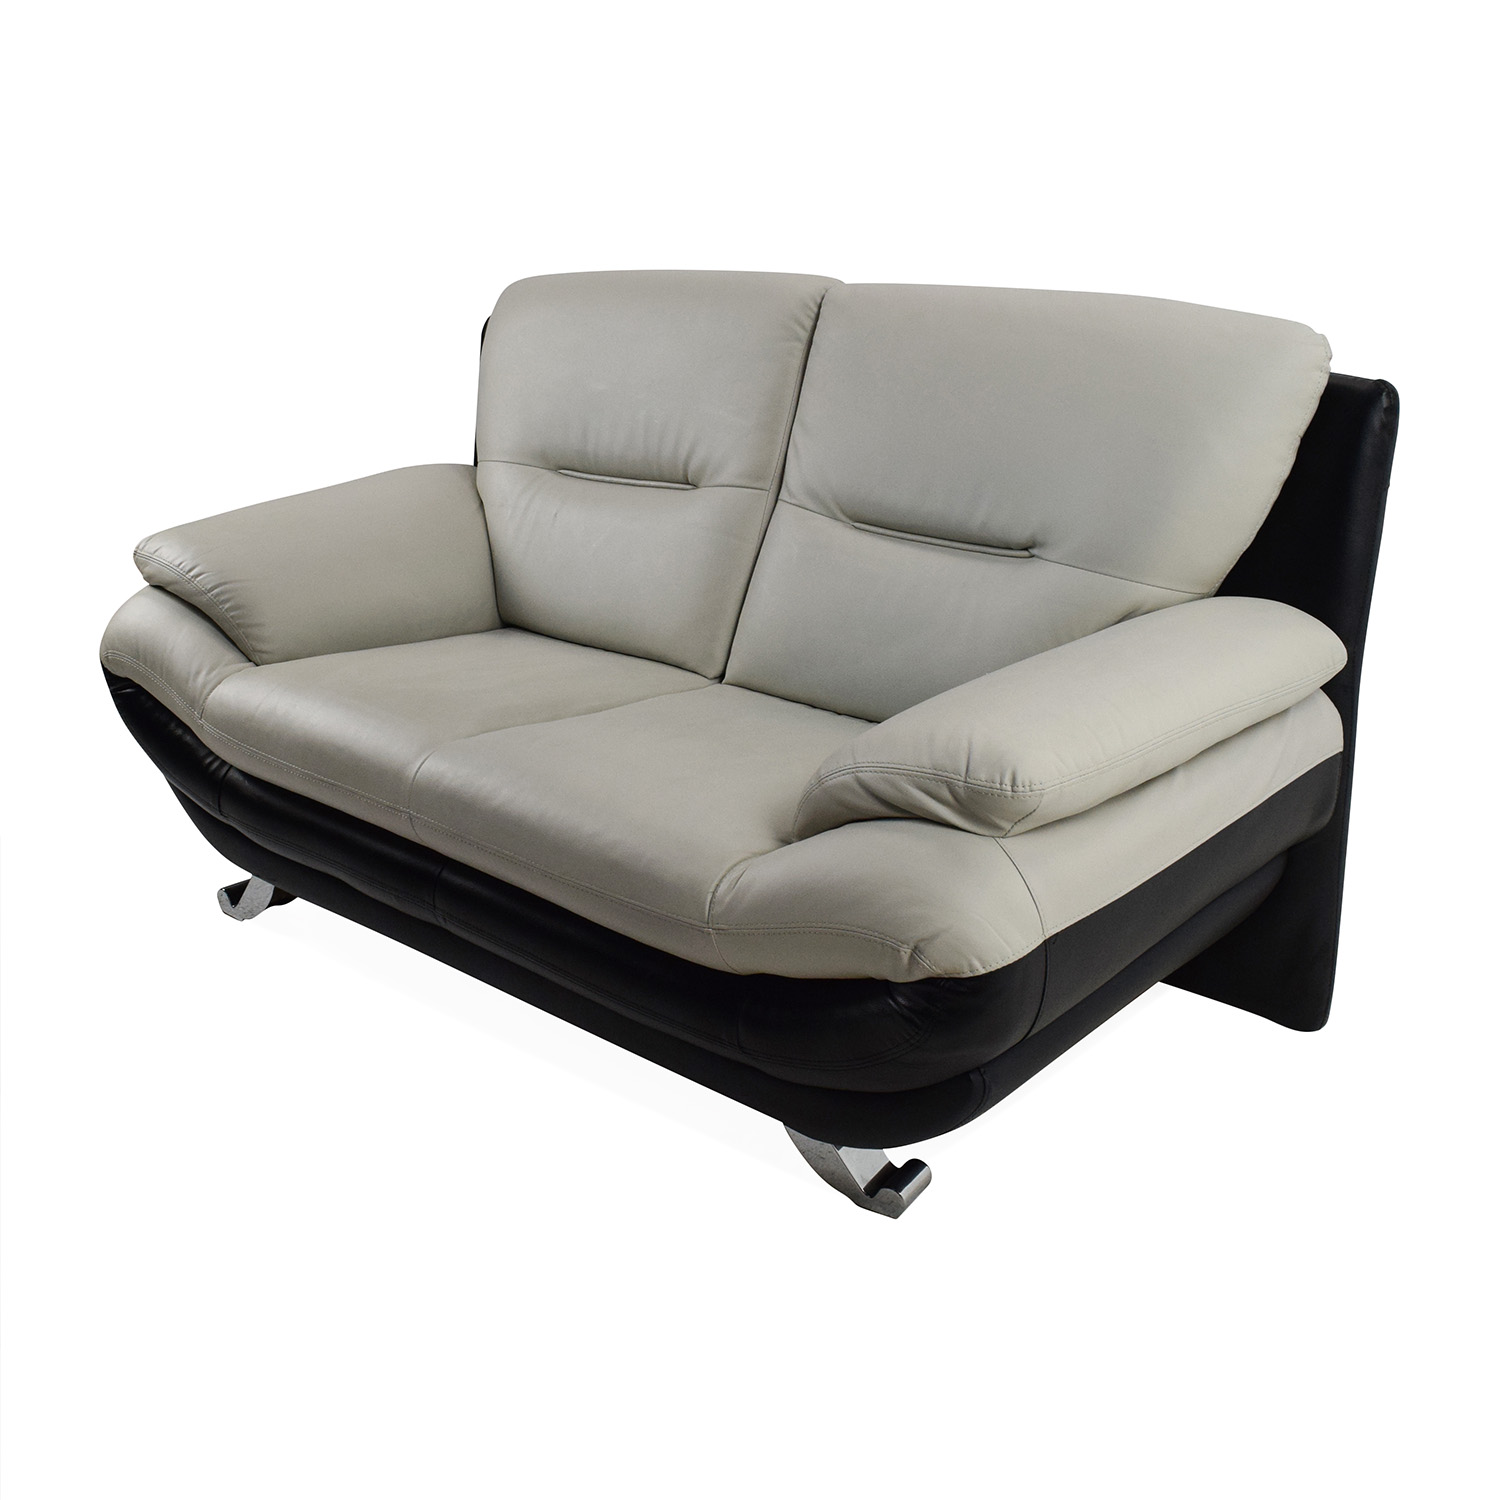 62 off modern leather 2 seater couch sofas Couches and loveseats